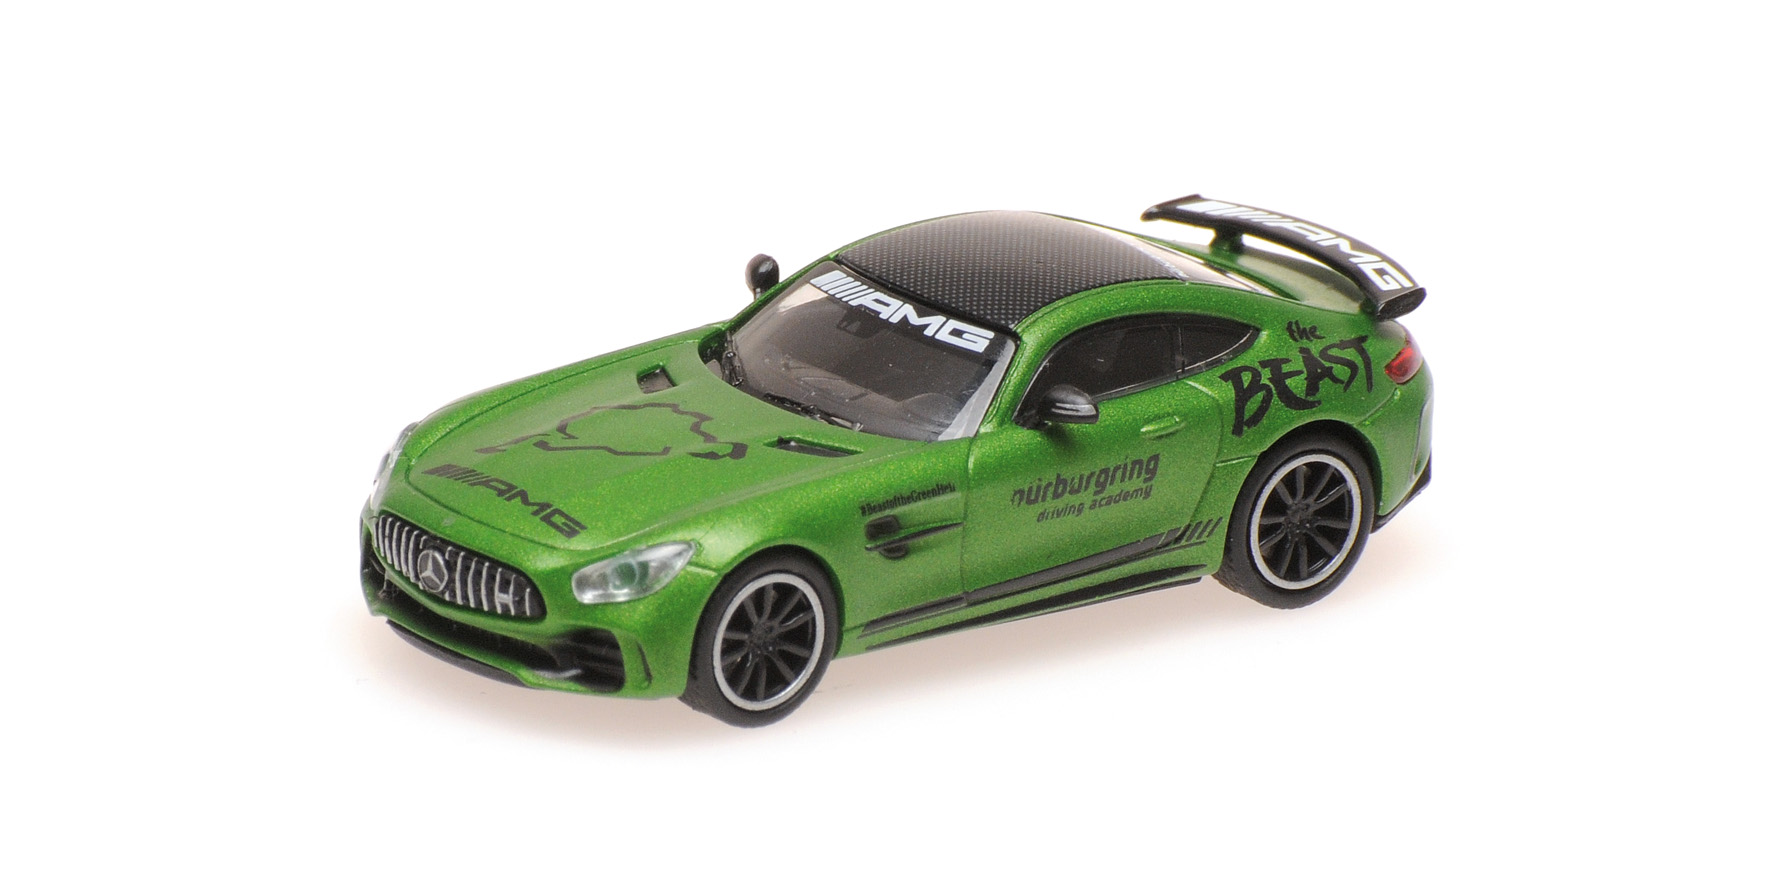 Merceds-Benz AMG GT-R 2017 Ring Taxi